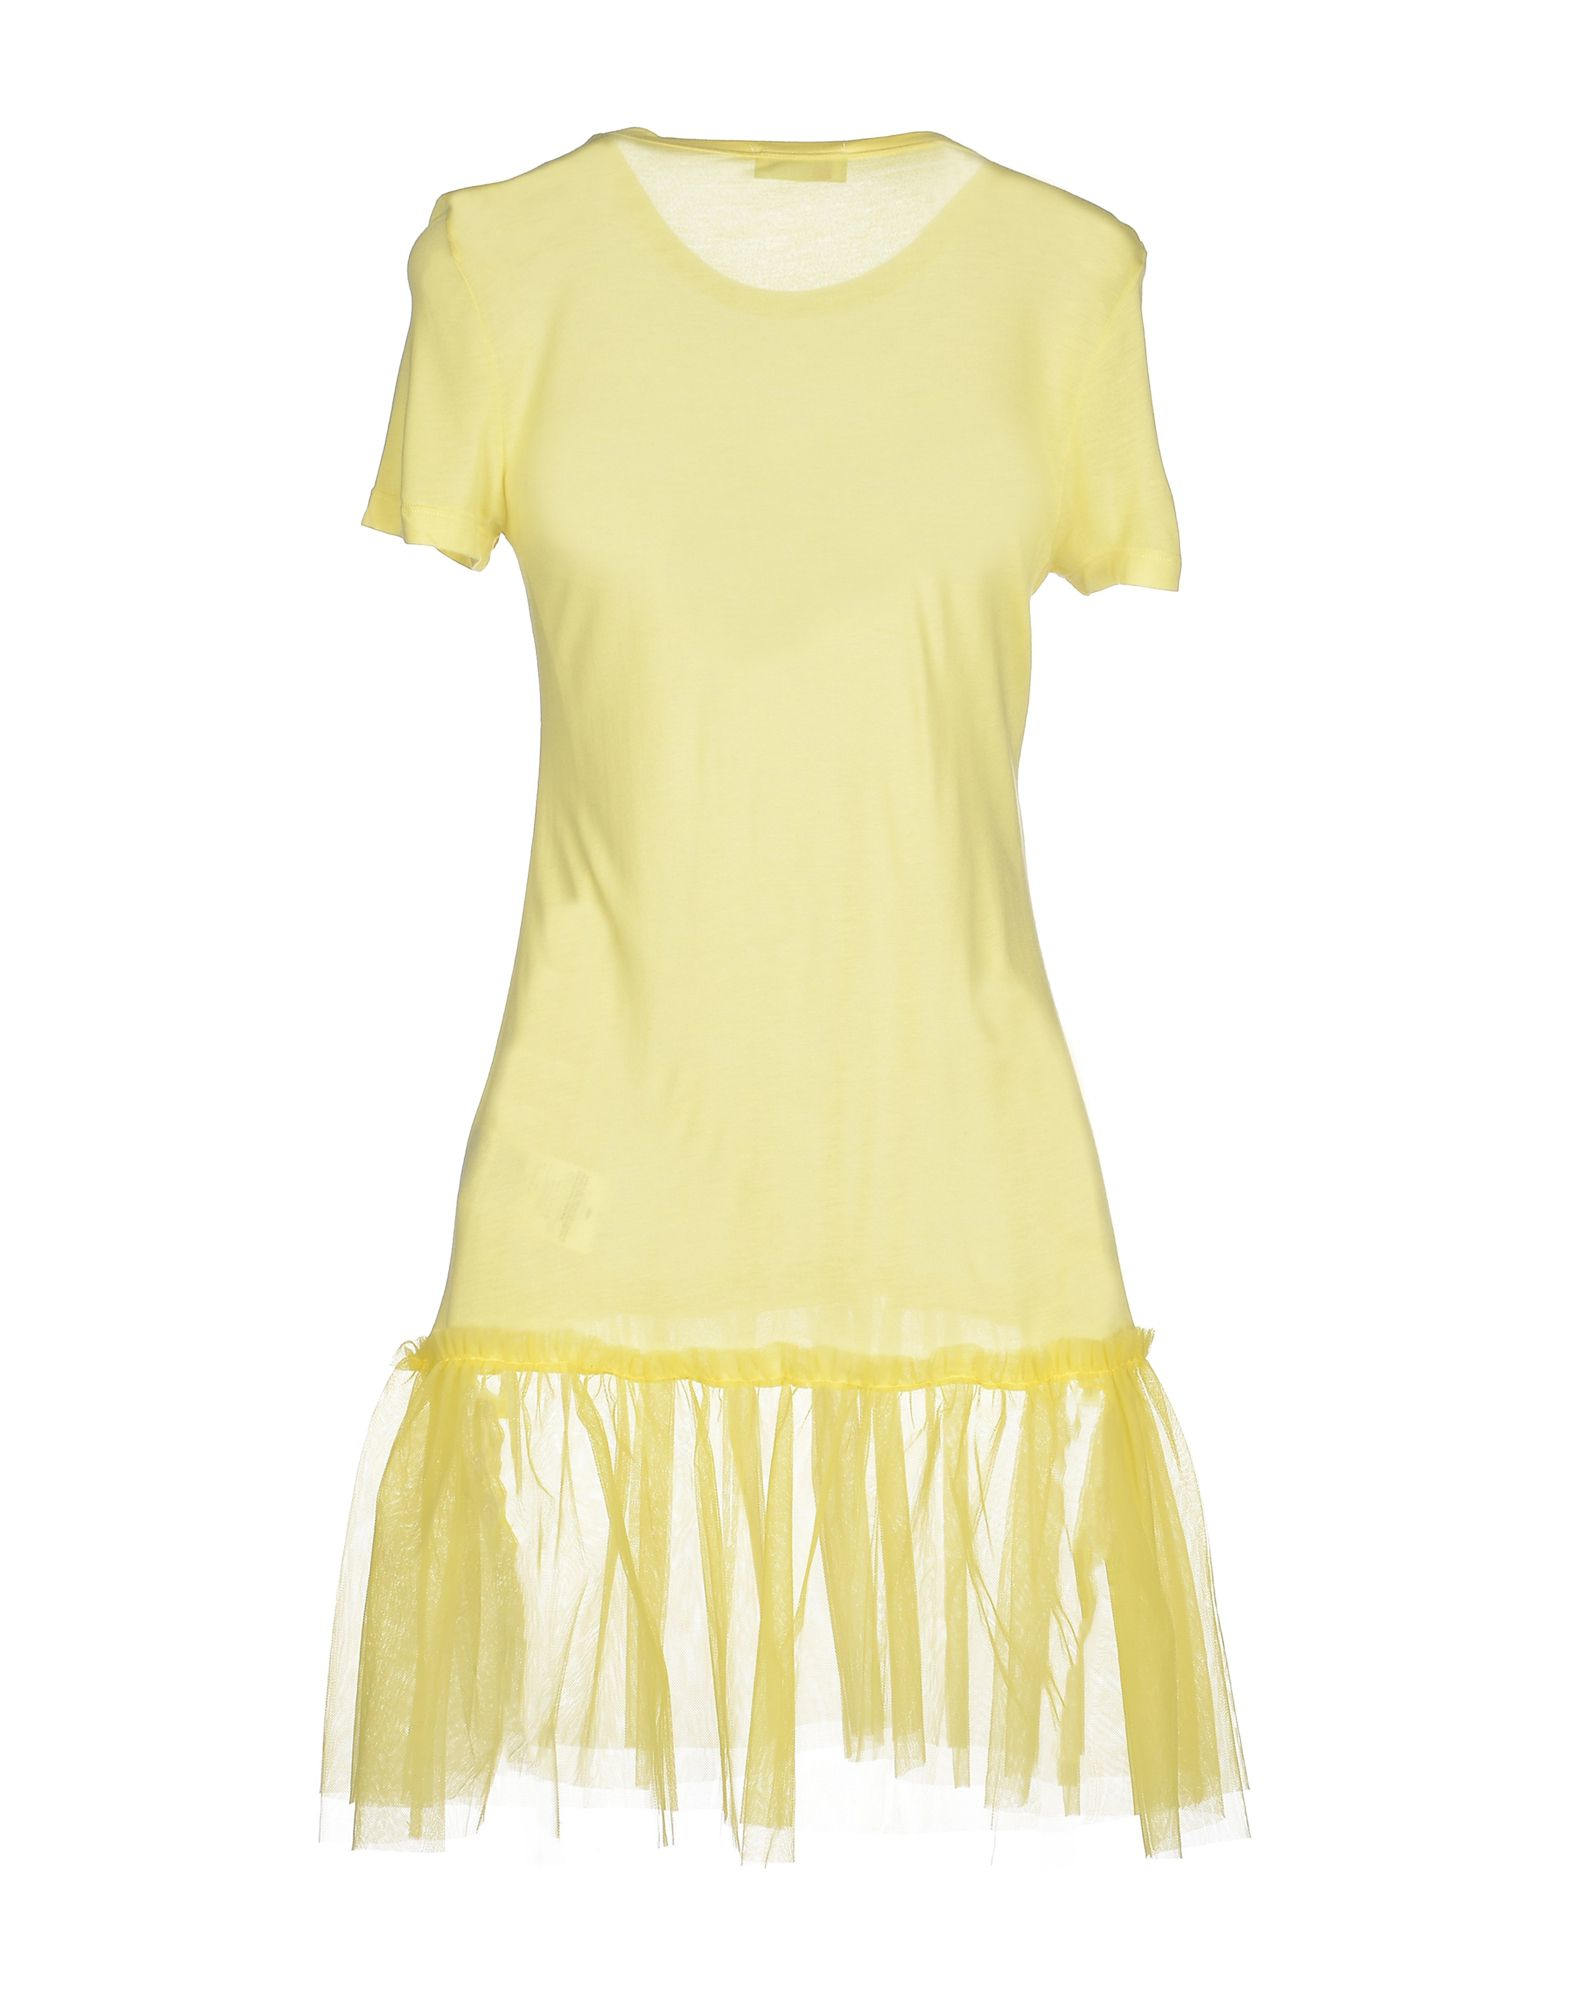 Red valentino t shirt in yellow save 50 lyst for Red valentino t shirt